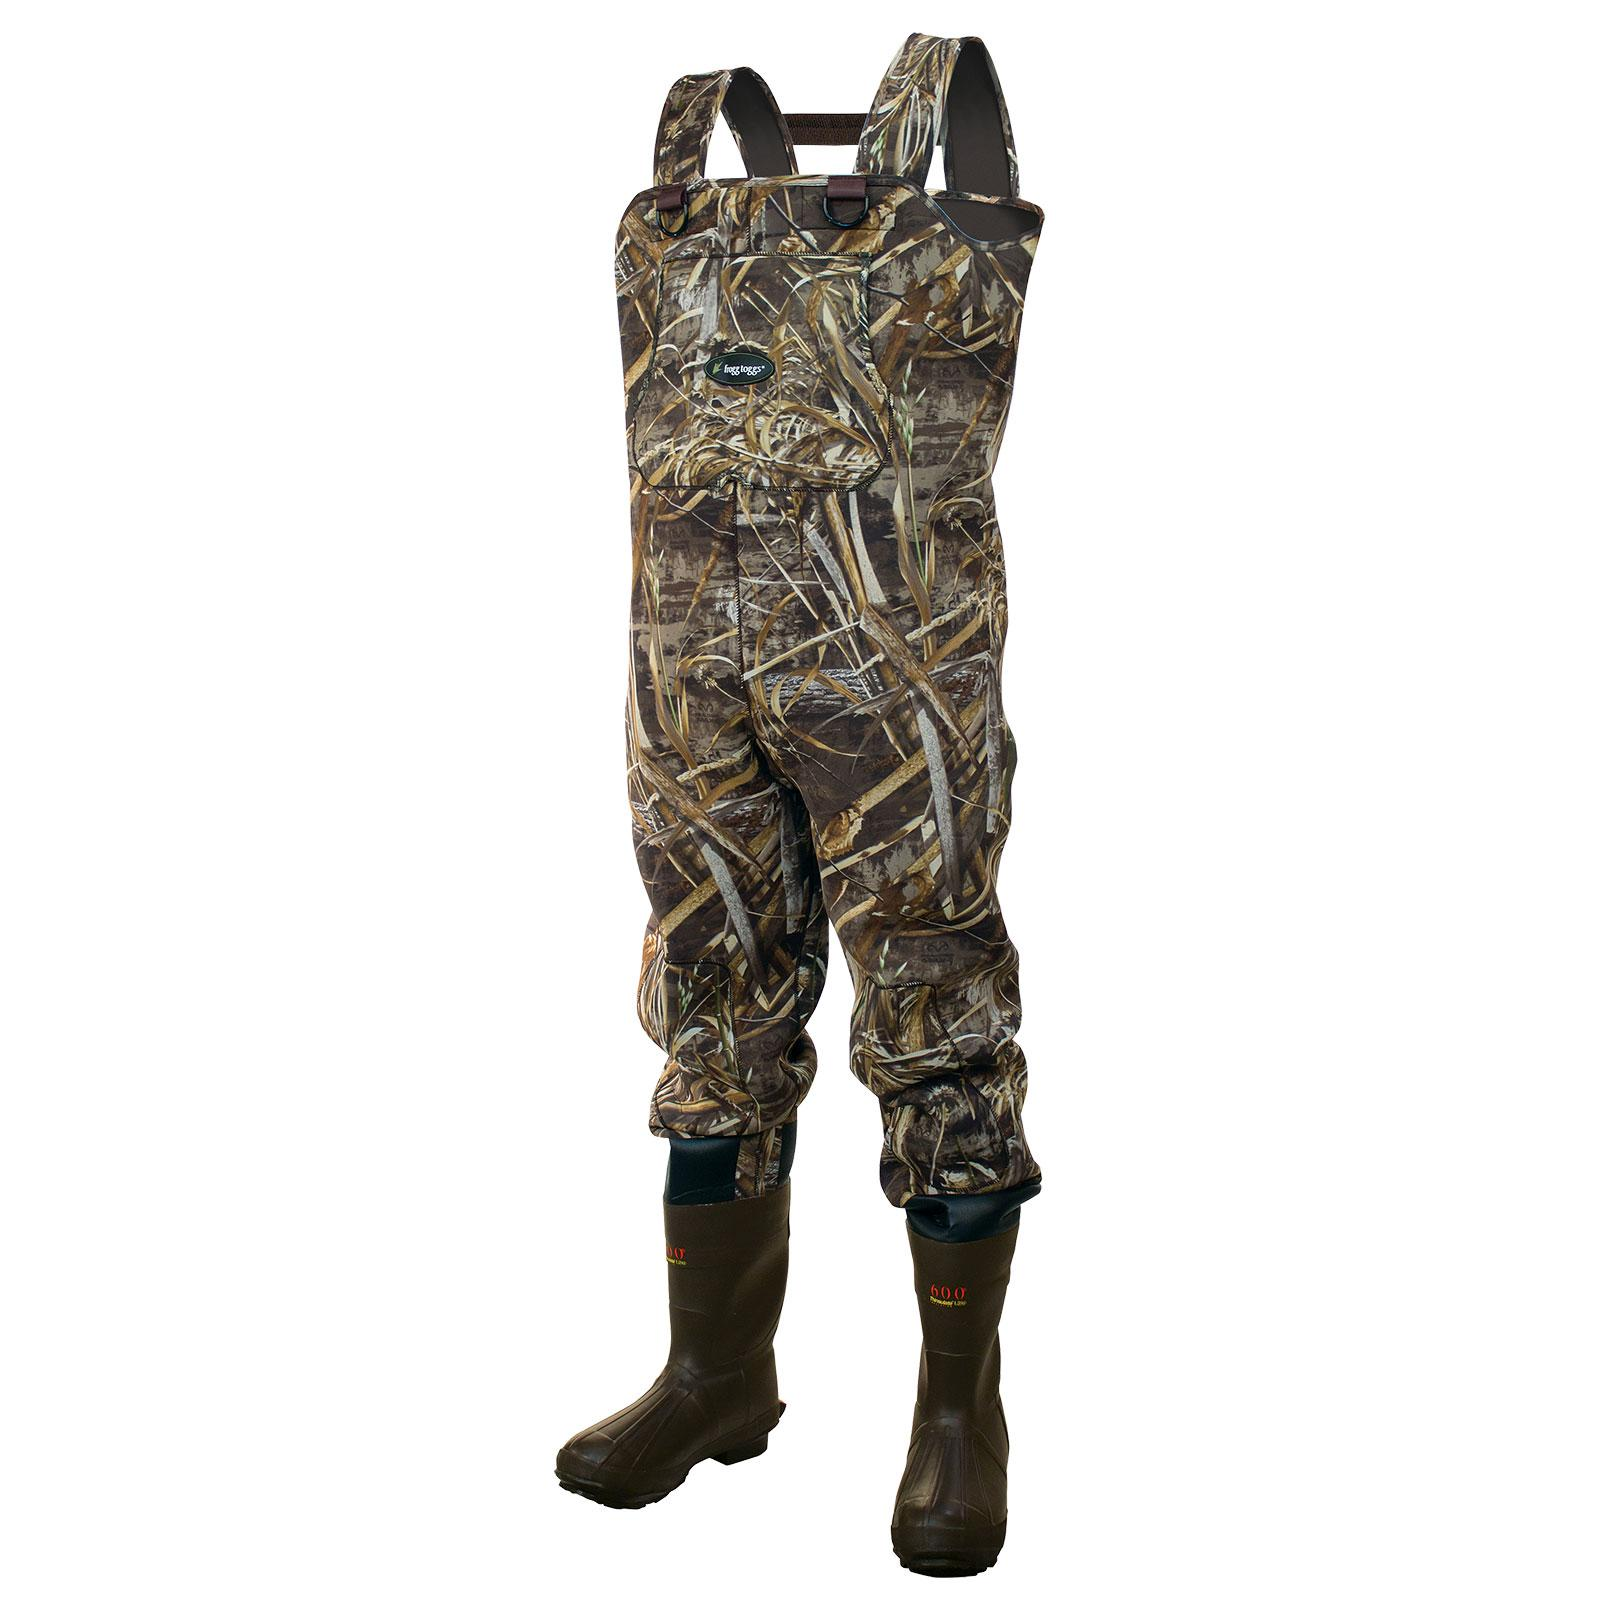 Frogg Toggs Men's Amphib Realtree Neoprene Bootfoot Chest Waders Timber; 8